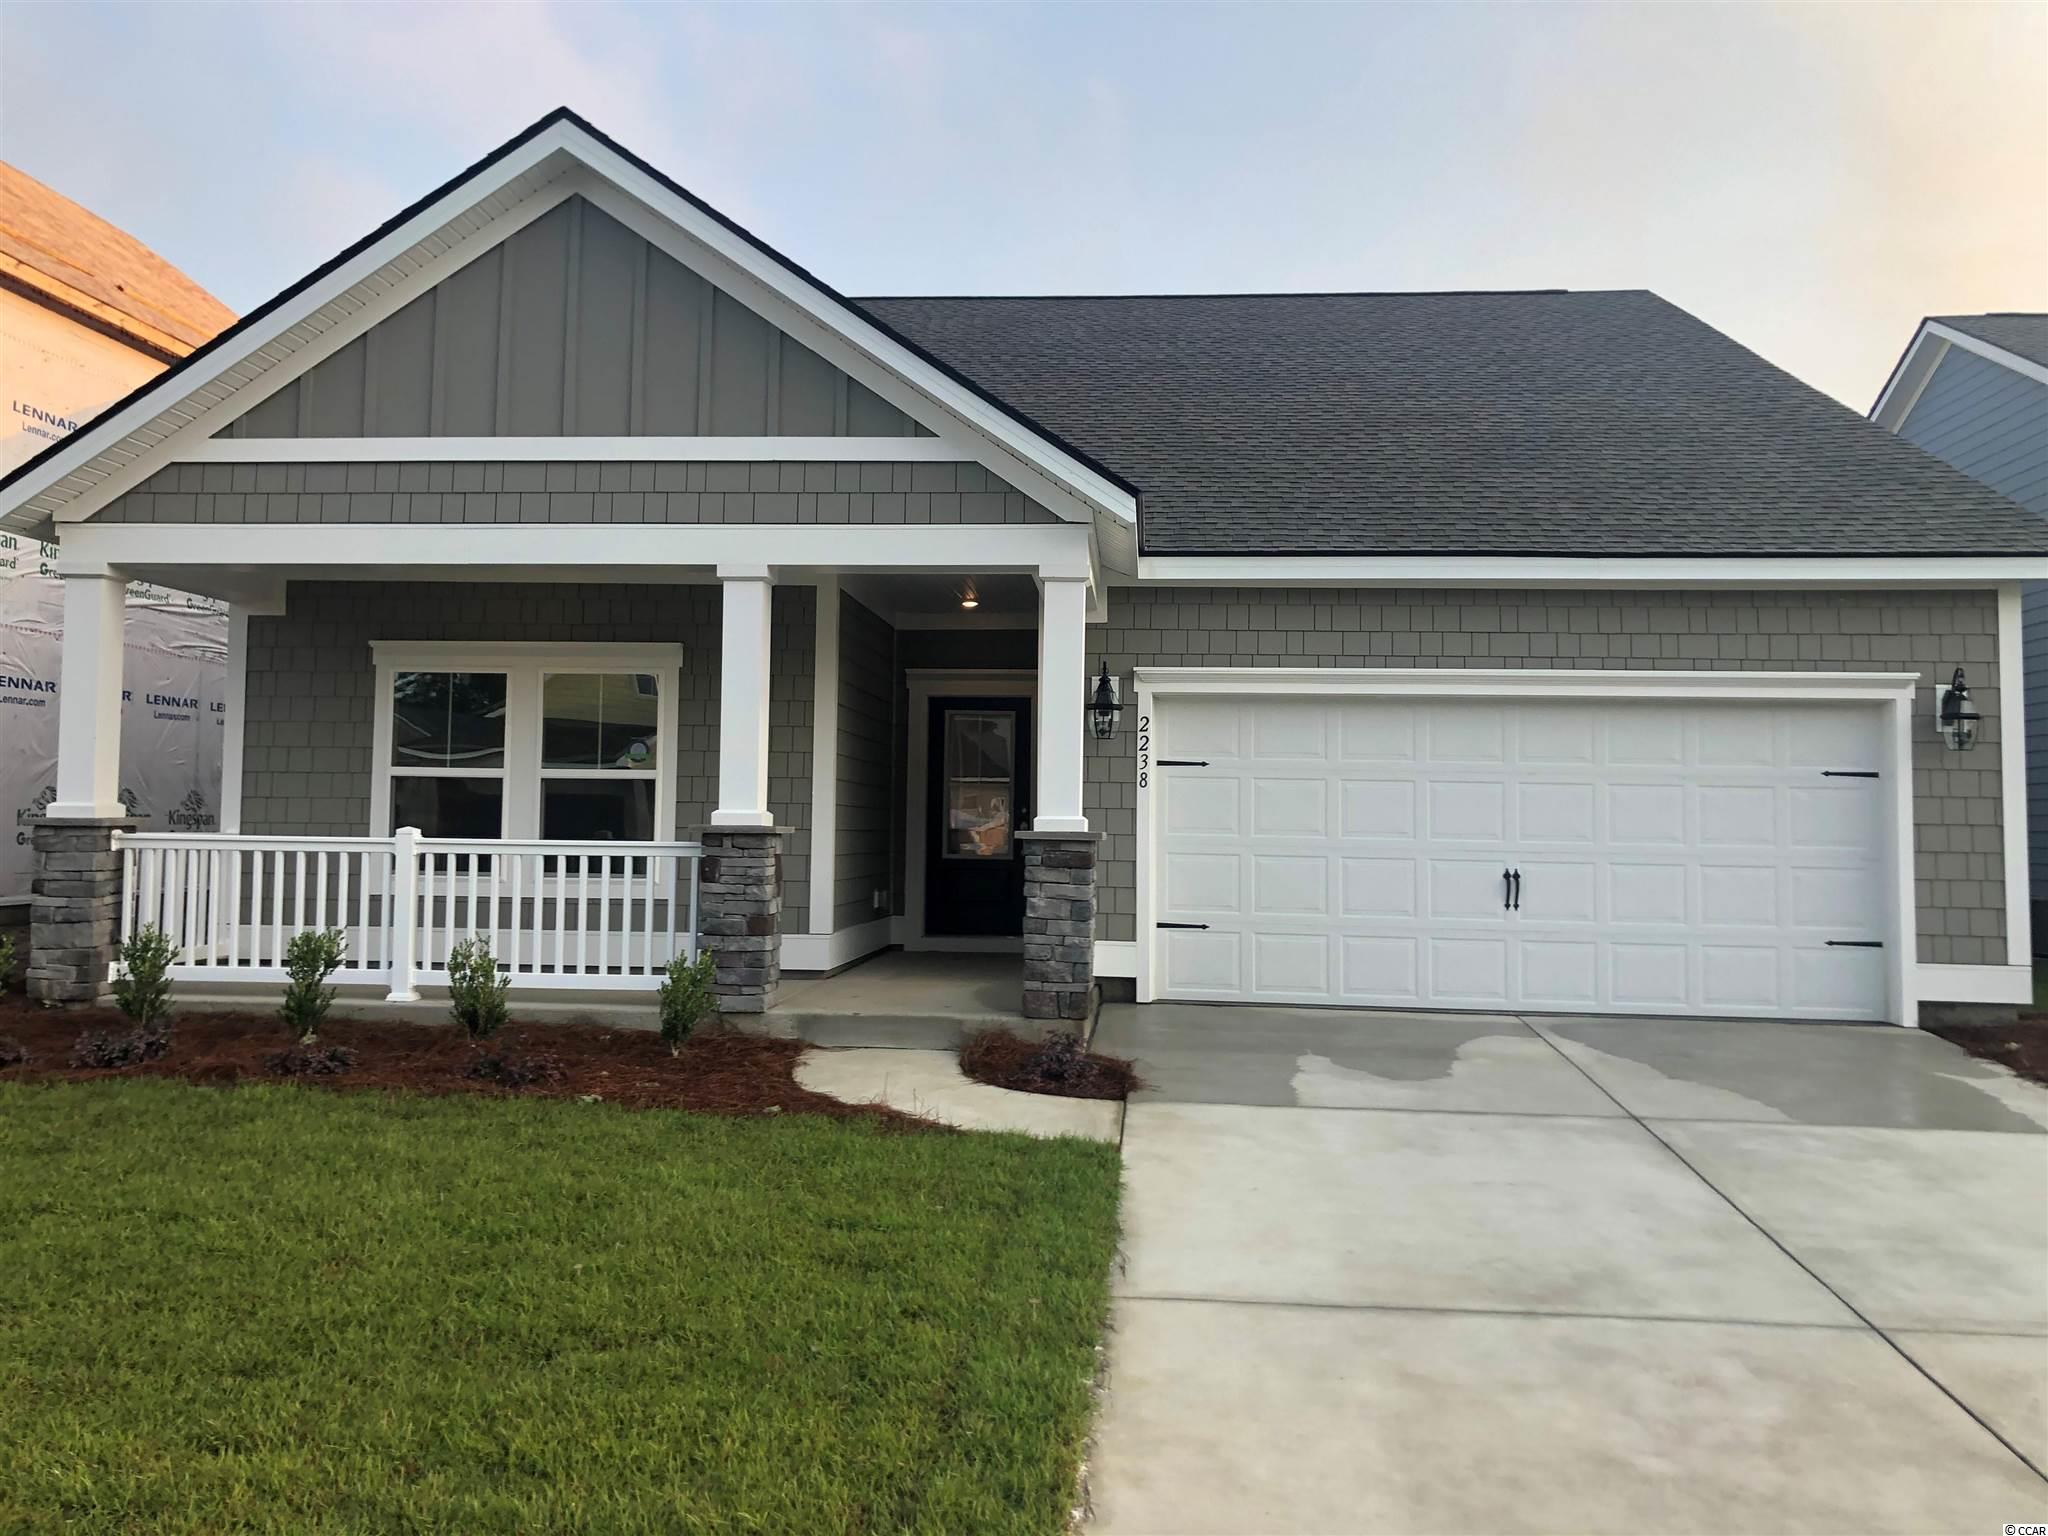 """Exciting Phase 5 homes underway! Gorgeous 3 bedroom with large kitchen with granite countertops in the amazing Market Common community!. The World's First Wi-Fi CERTIFIED Home Designs!  Featured home is The St. Phillips Model. Very poplular FLOOR PLAN! This home boasts southern charm. Check out our new floor plans. Come sit and relax on the big front porch and enjoy our resort style amenities!  Belle Harbor (A Coastal Lifestyle Community) is nestled in the pristine Community of Market Commons. It will feature 400 beautiful homesites backing up to woods and pond views. With a selection of homes ranging from 1772 to 2899 heated square feet, they're flexible enough to meet any family's needs. These homes will feature our """"Everything's Included"""" package which includes many upgrades such as HardiPlank® siding, granite countertops, tiled backsplash, Frigidaire stainless steel kitchen appliances and upgraded cabinets in the kitchen. Tile flooring in baths / laundry room and a tankless water heater (Rinnai). Also includes a gas range, 2 car garage and a covered lanai for outdoor living enjoyment. There is so much to discover in this diverse and intriguing area. (1.5 miles to the beach). Short Golf Cart ride to shopping, restaurants, and the beach.  We invite you to surround yourself with natural beauty and find how living the Belle Harbor lifestyle may be perfect for you. Some pictures may include upgrades. Buyer responsible for verification of all measurements."""